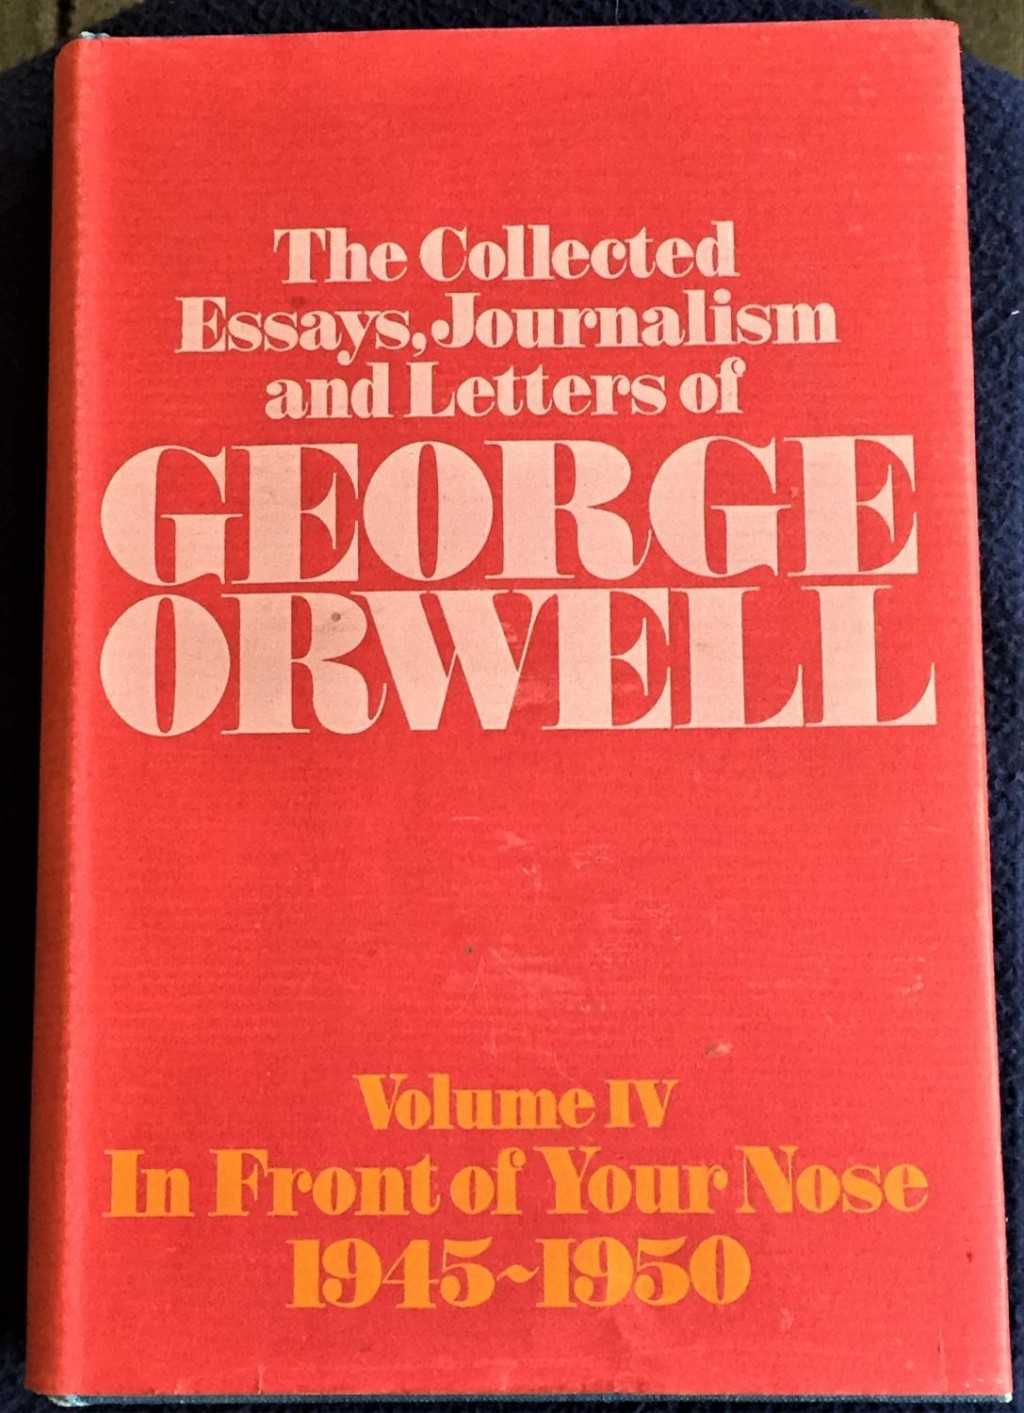 014 George Orwell Essays Essay Frightening 1984 Summary Collected Pdf On Writing Large